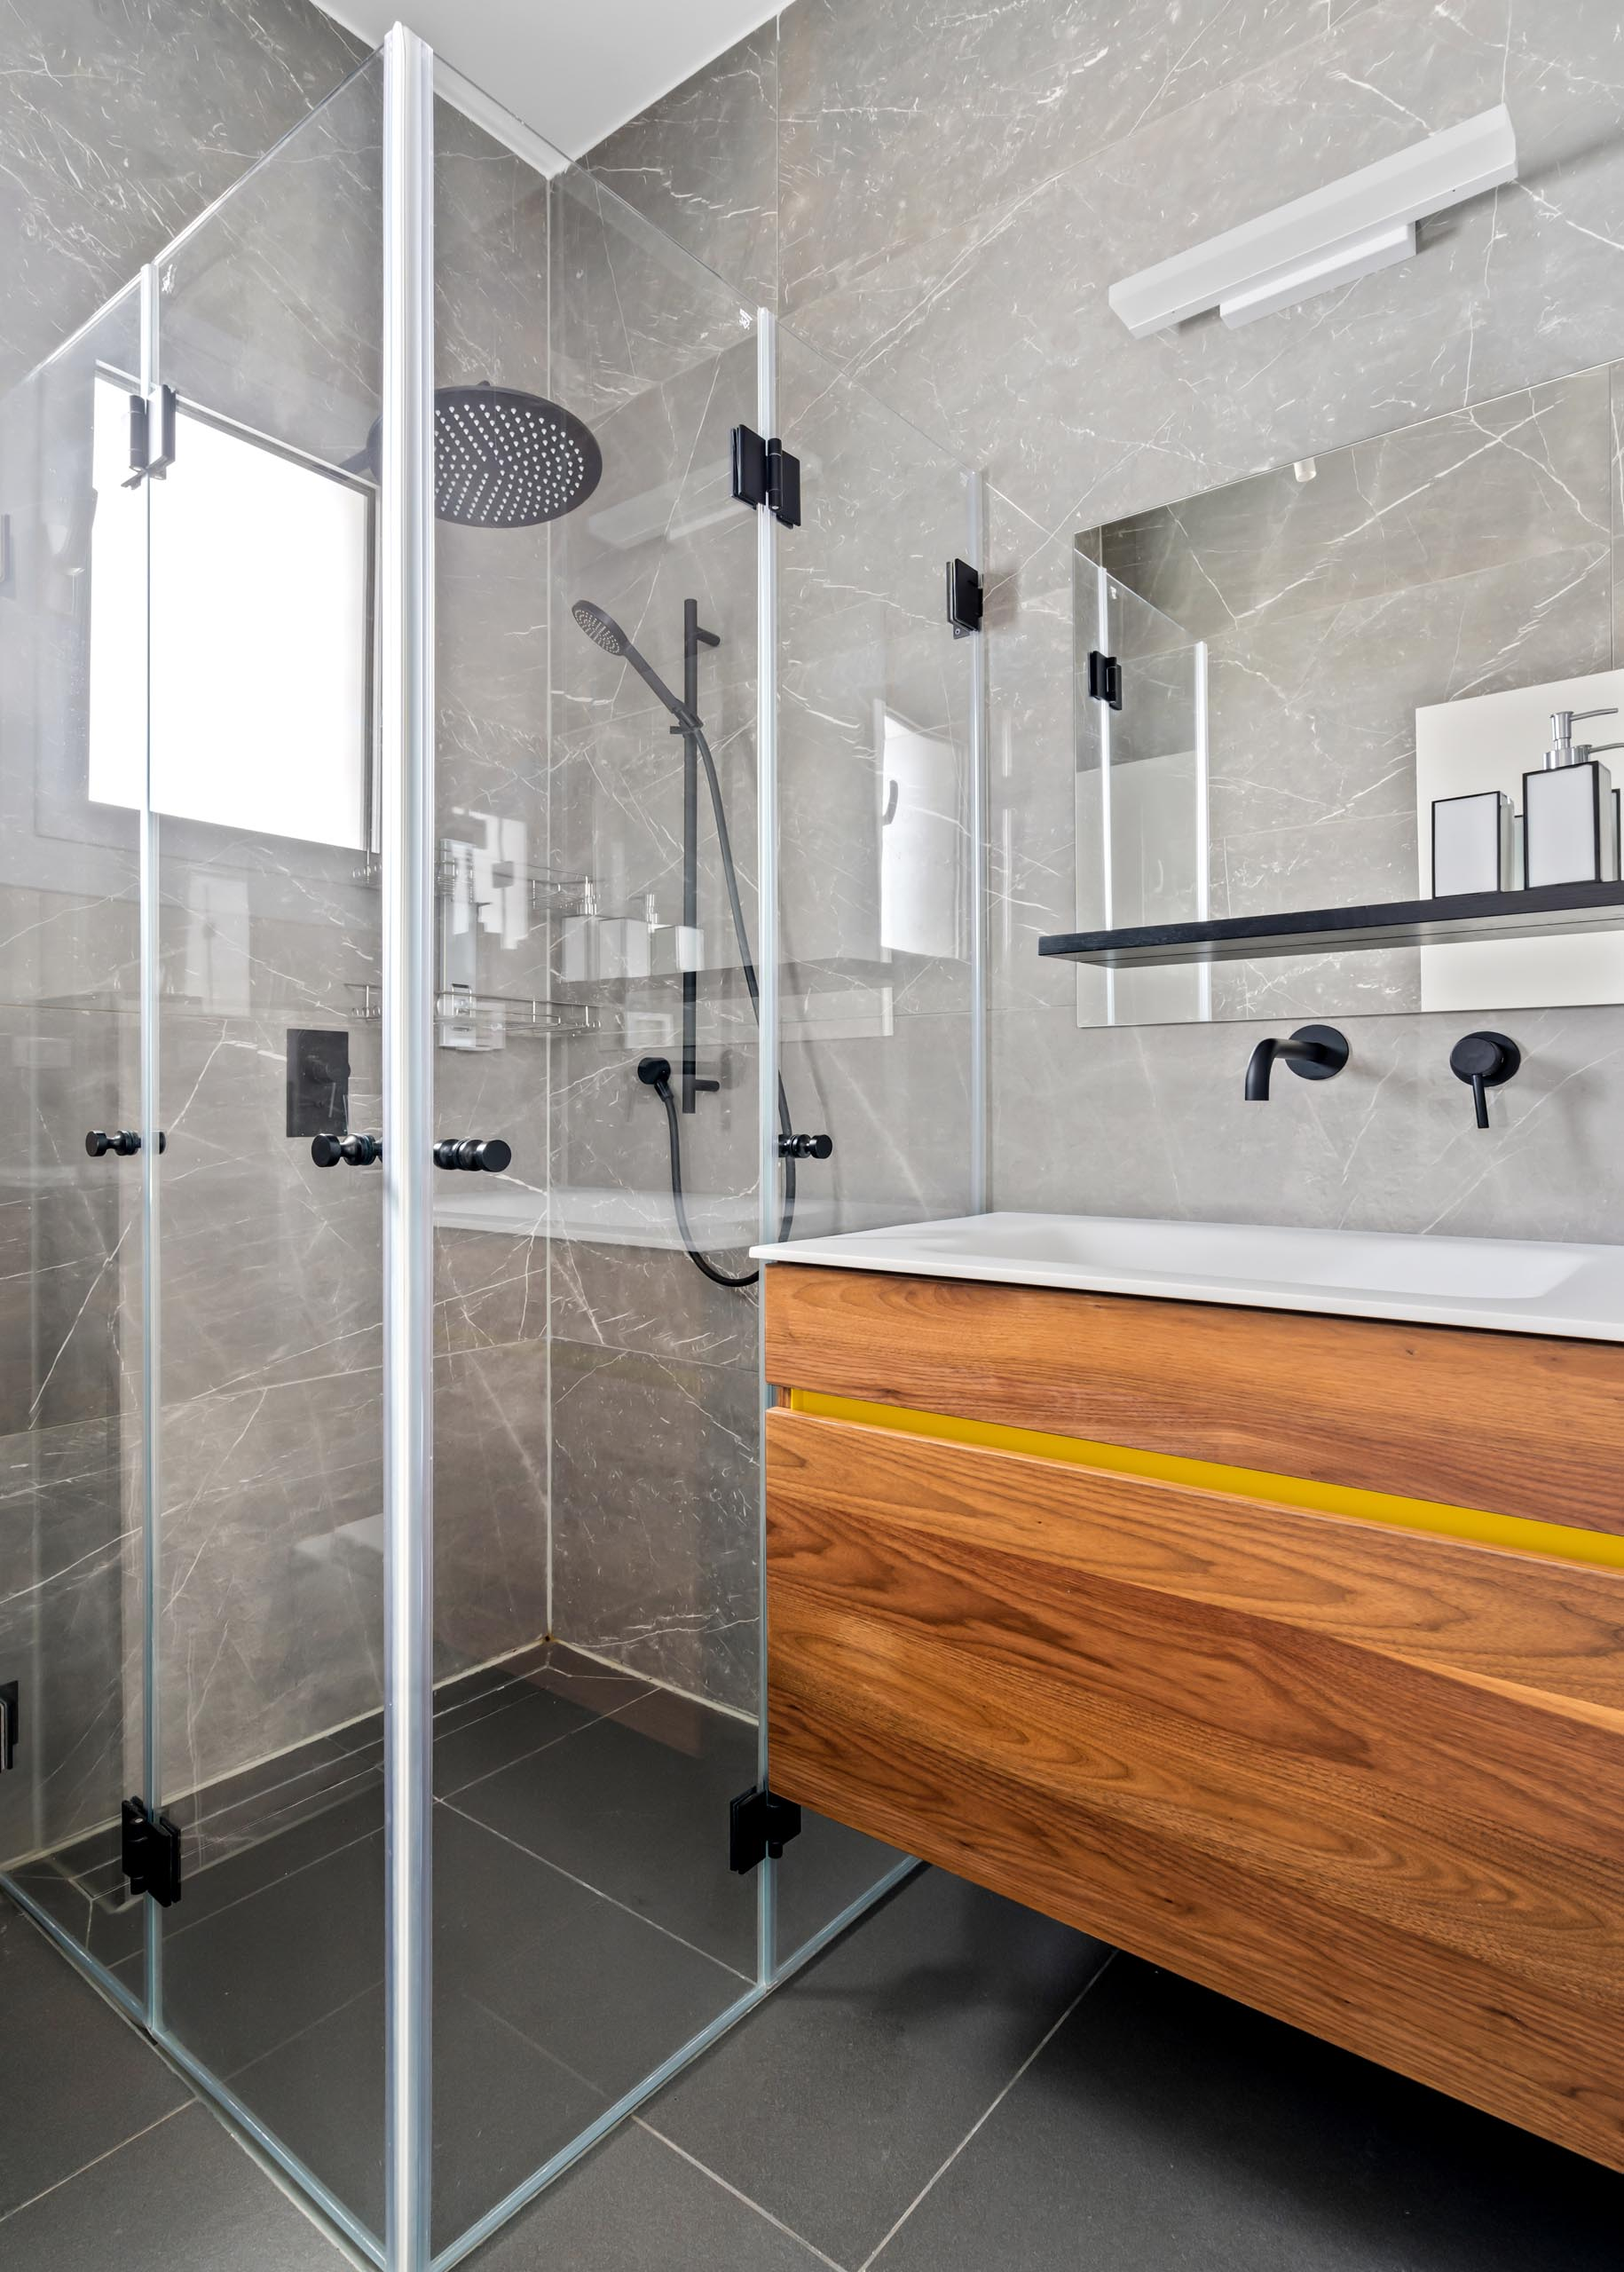 In this guest bathroom, there's a wood vanity with a simple yellow strip for a unique touch.